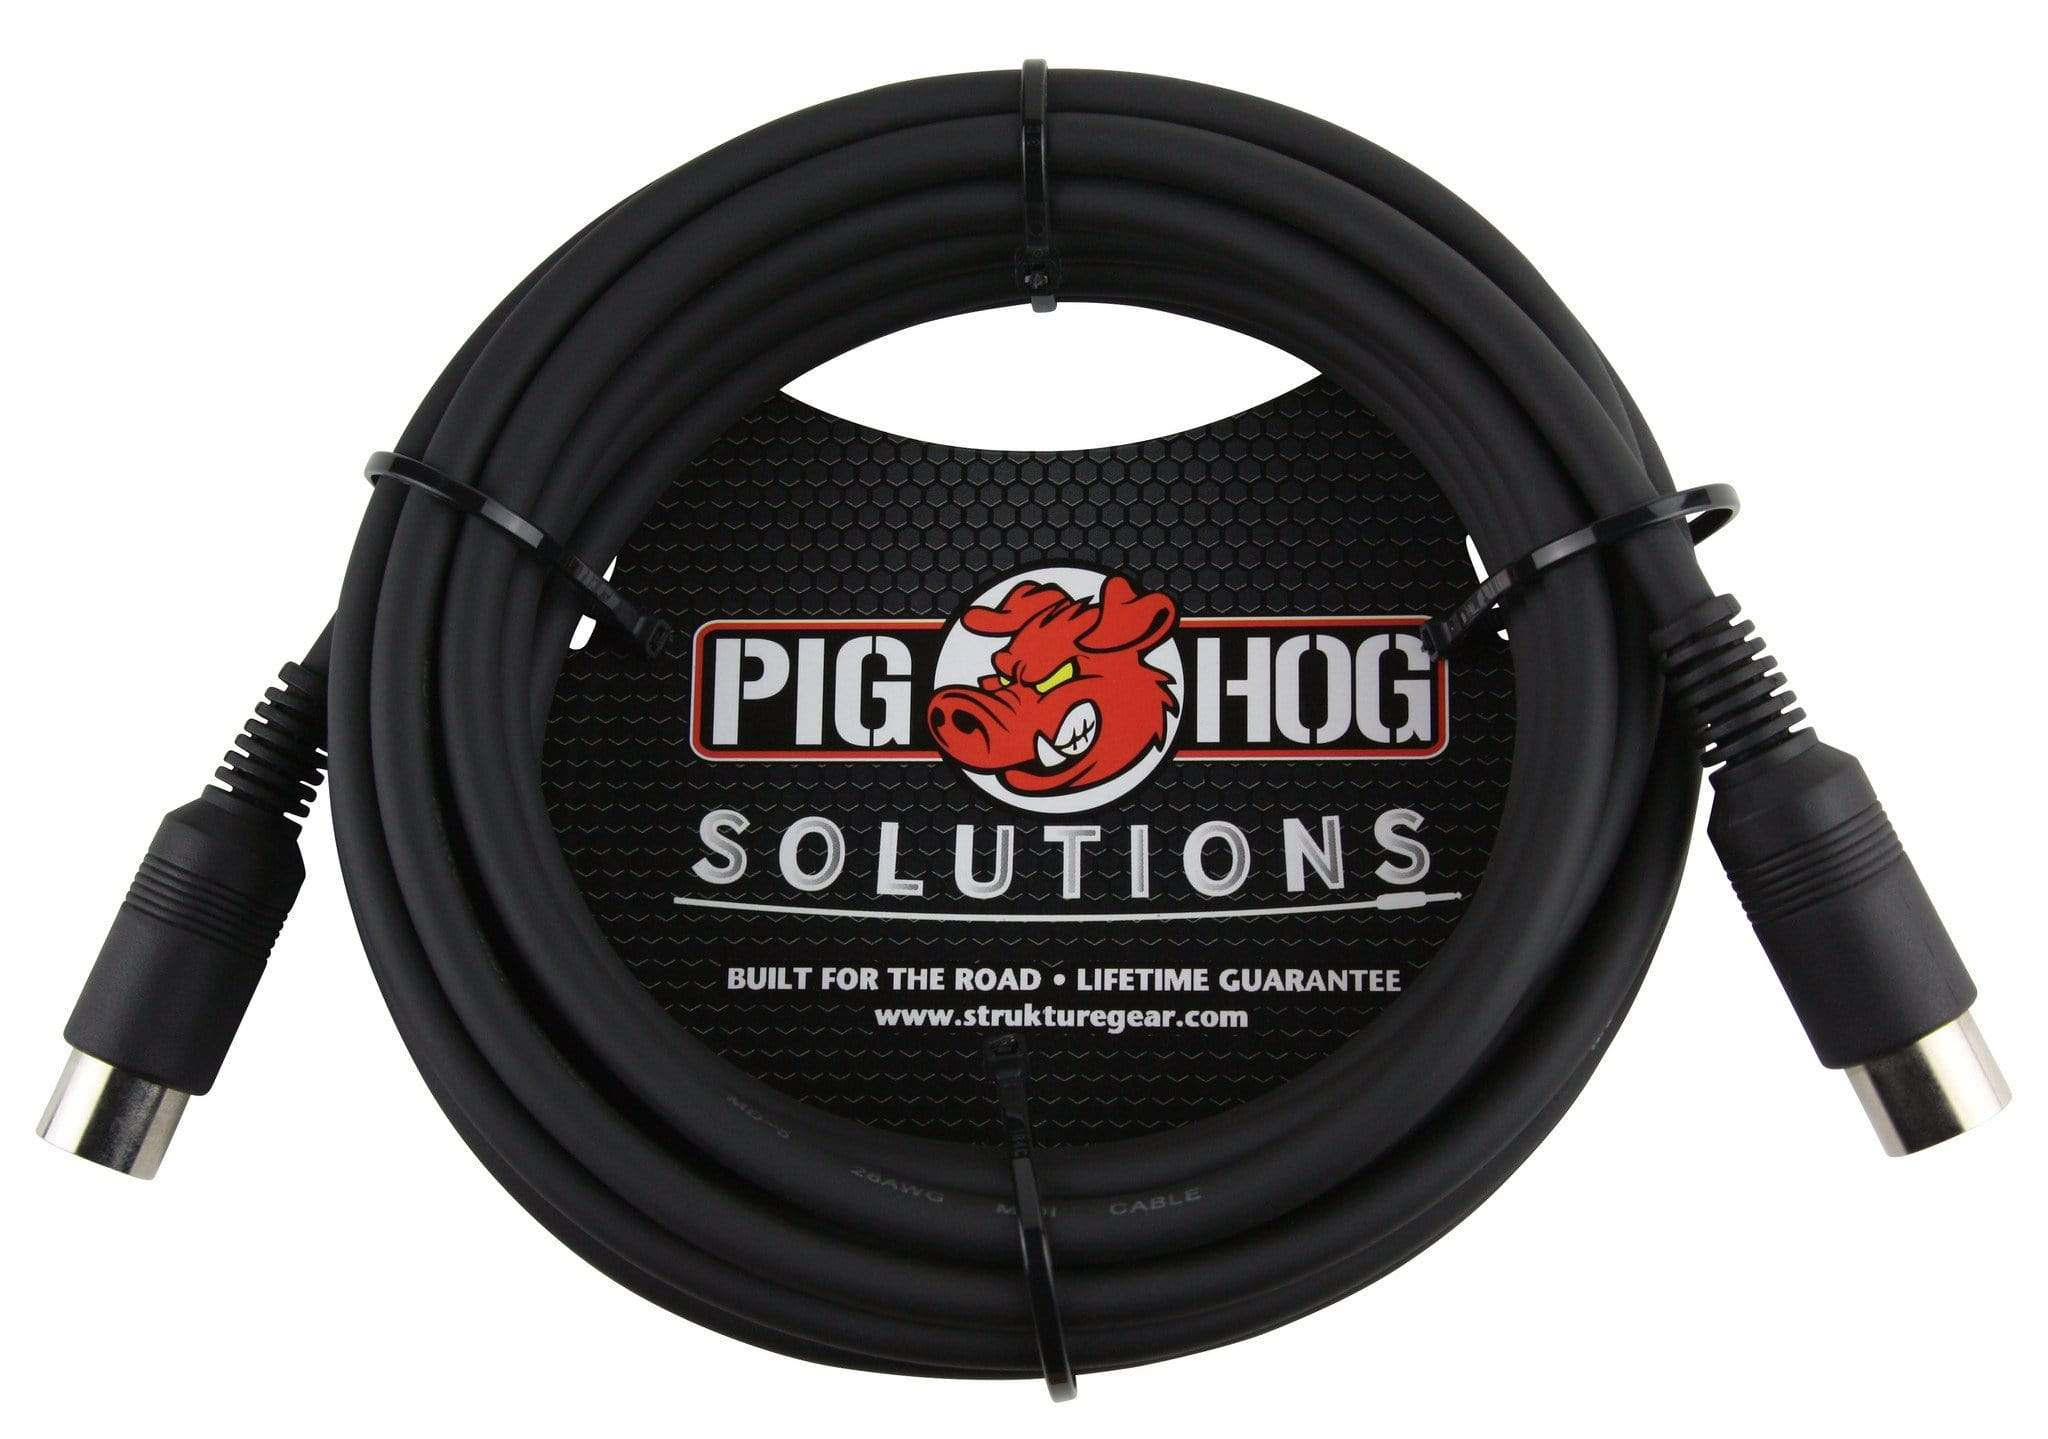 PIG HOG MIDI CABLES Pig Hog 15 ft MIDI Cable Black Instrument Interface PMID15 foot male to male NEW